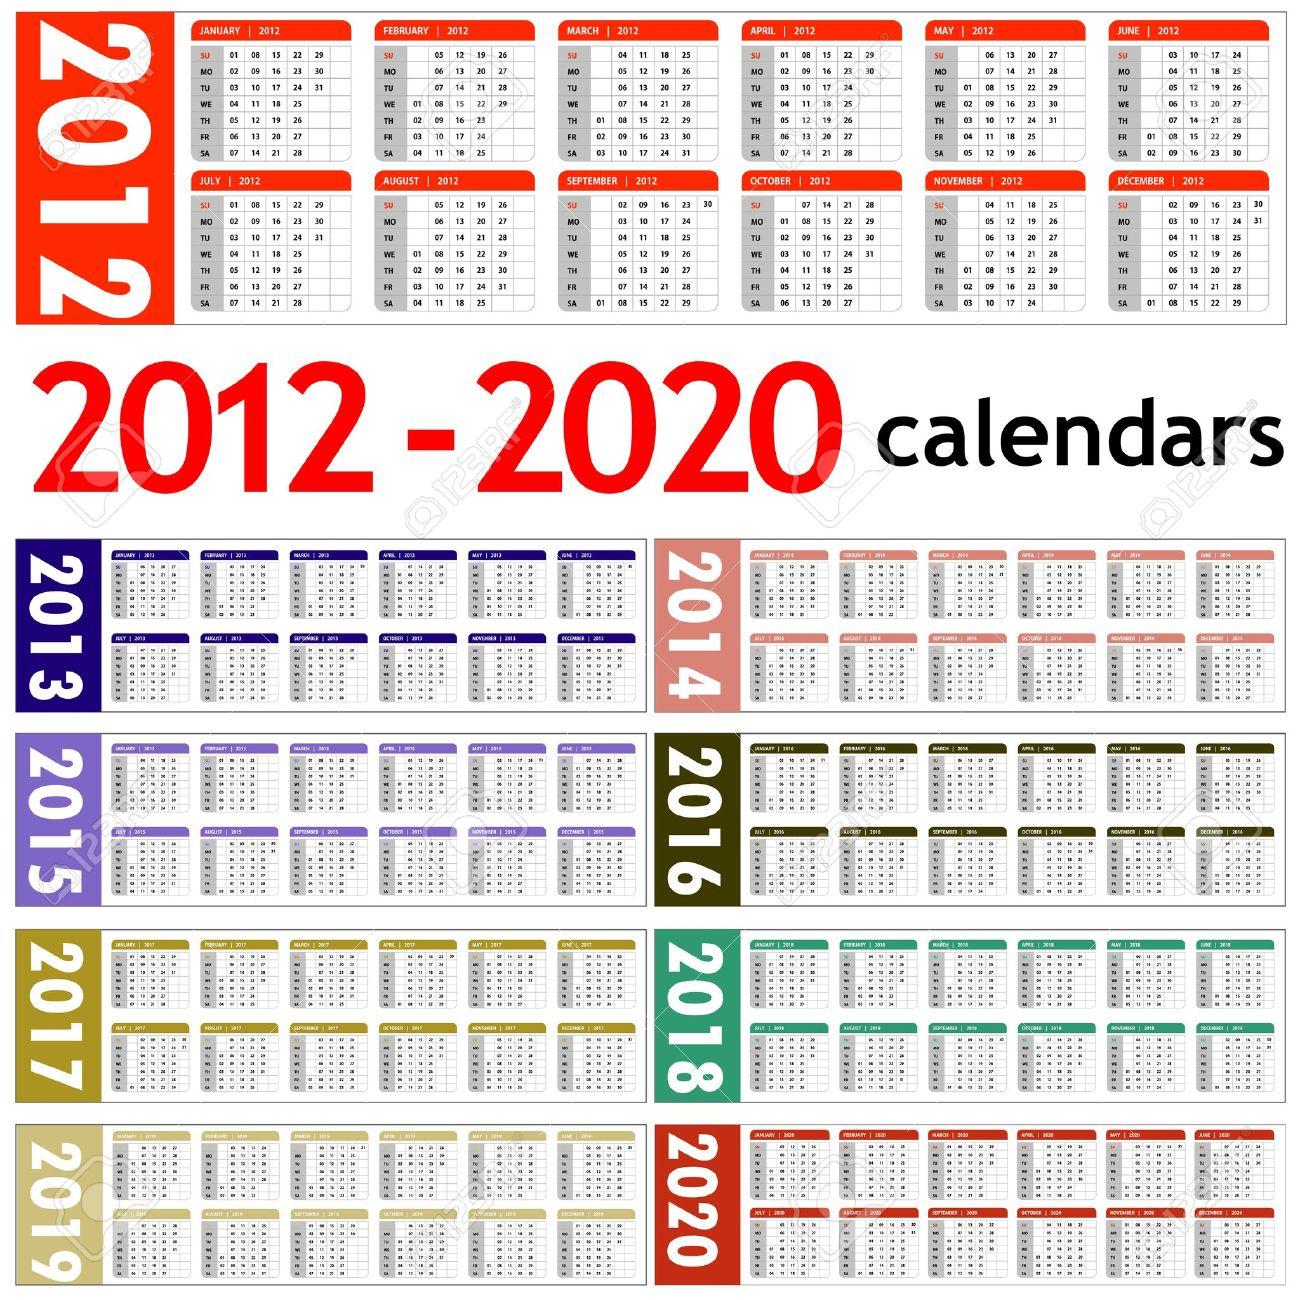 Calendar 2014 And 2020 New Year 2012, 2013, 2014, 2015, 2016, 2017, 2018, 2019,.. Royalty